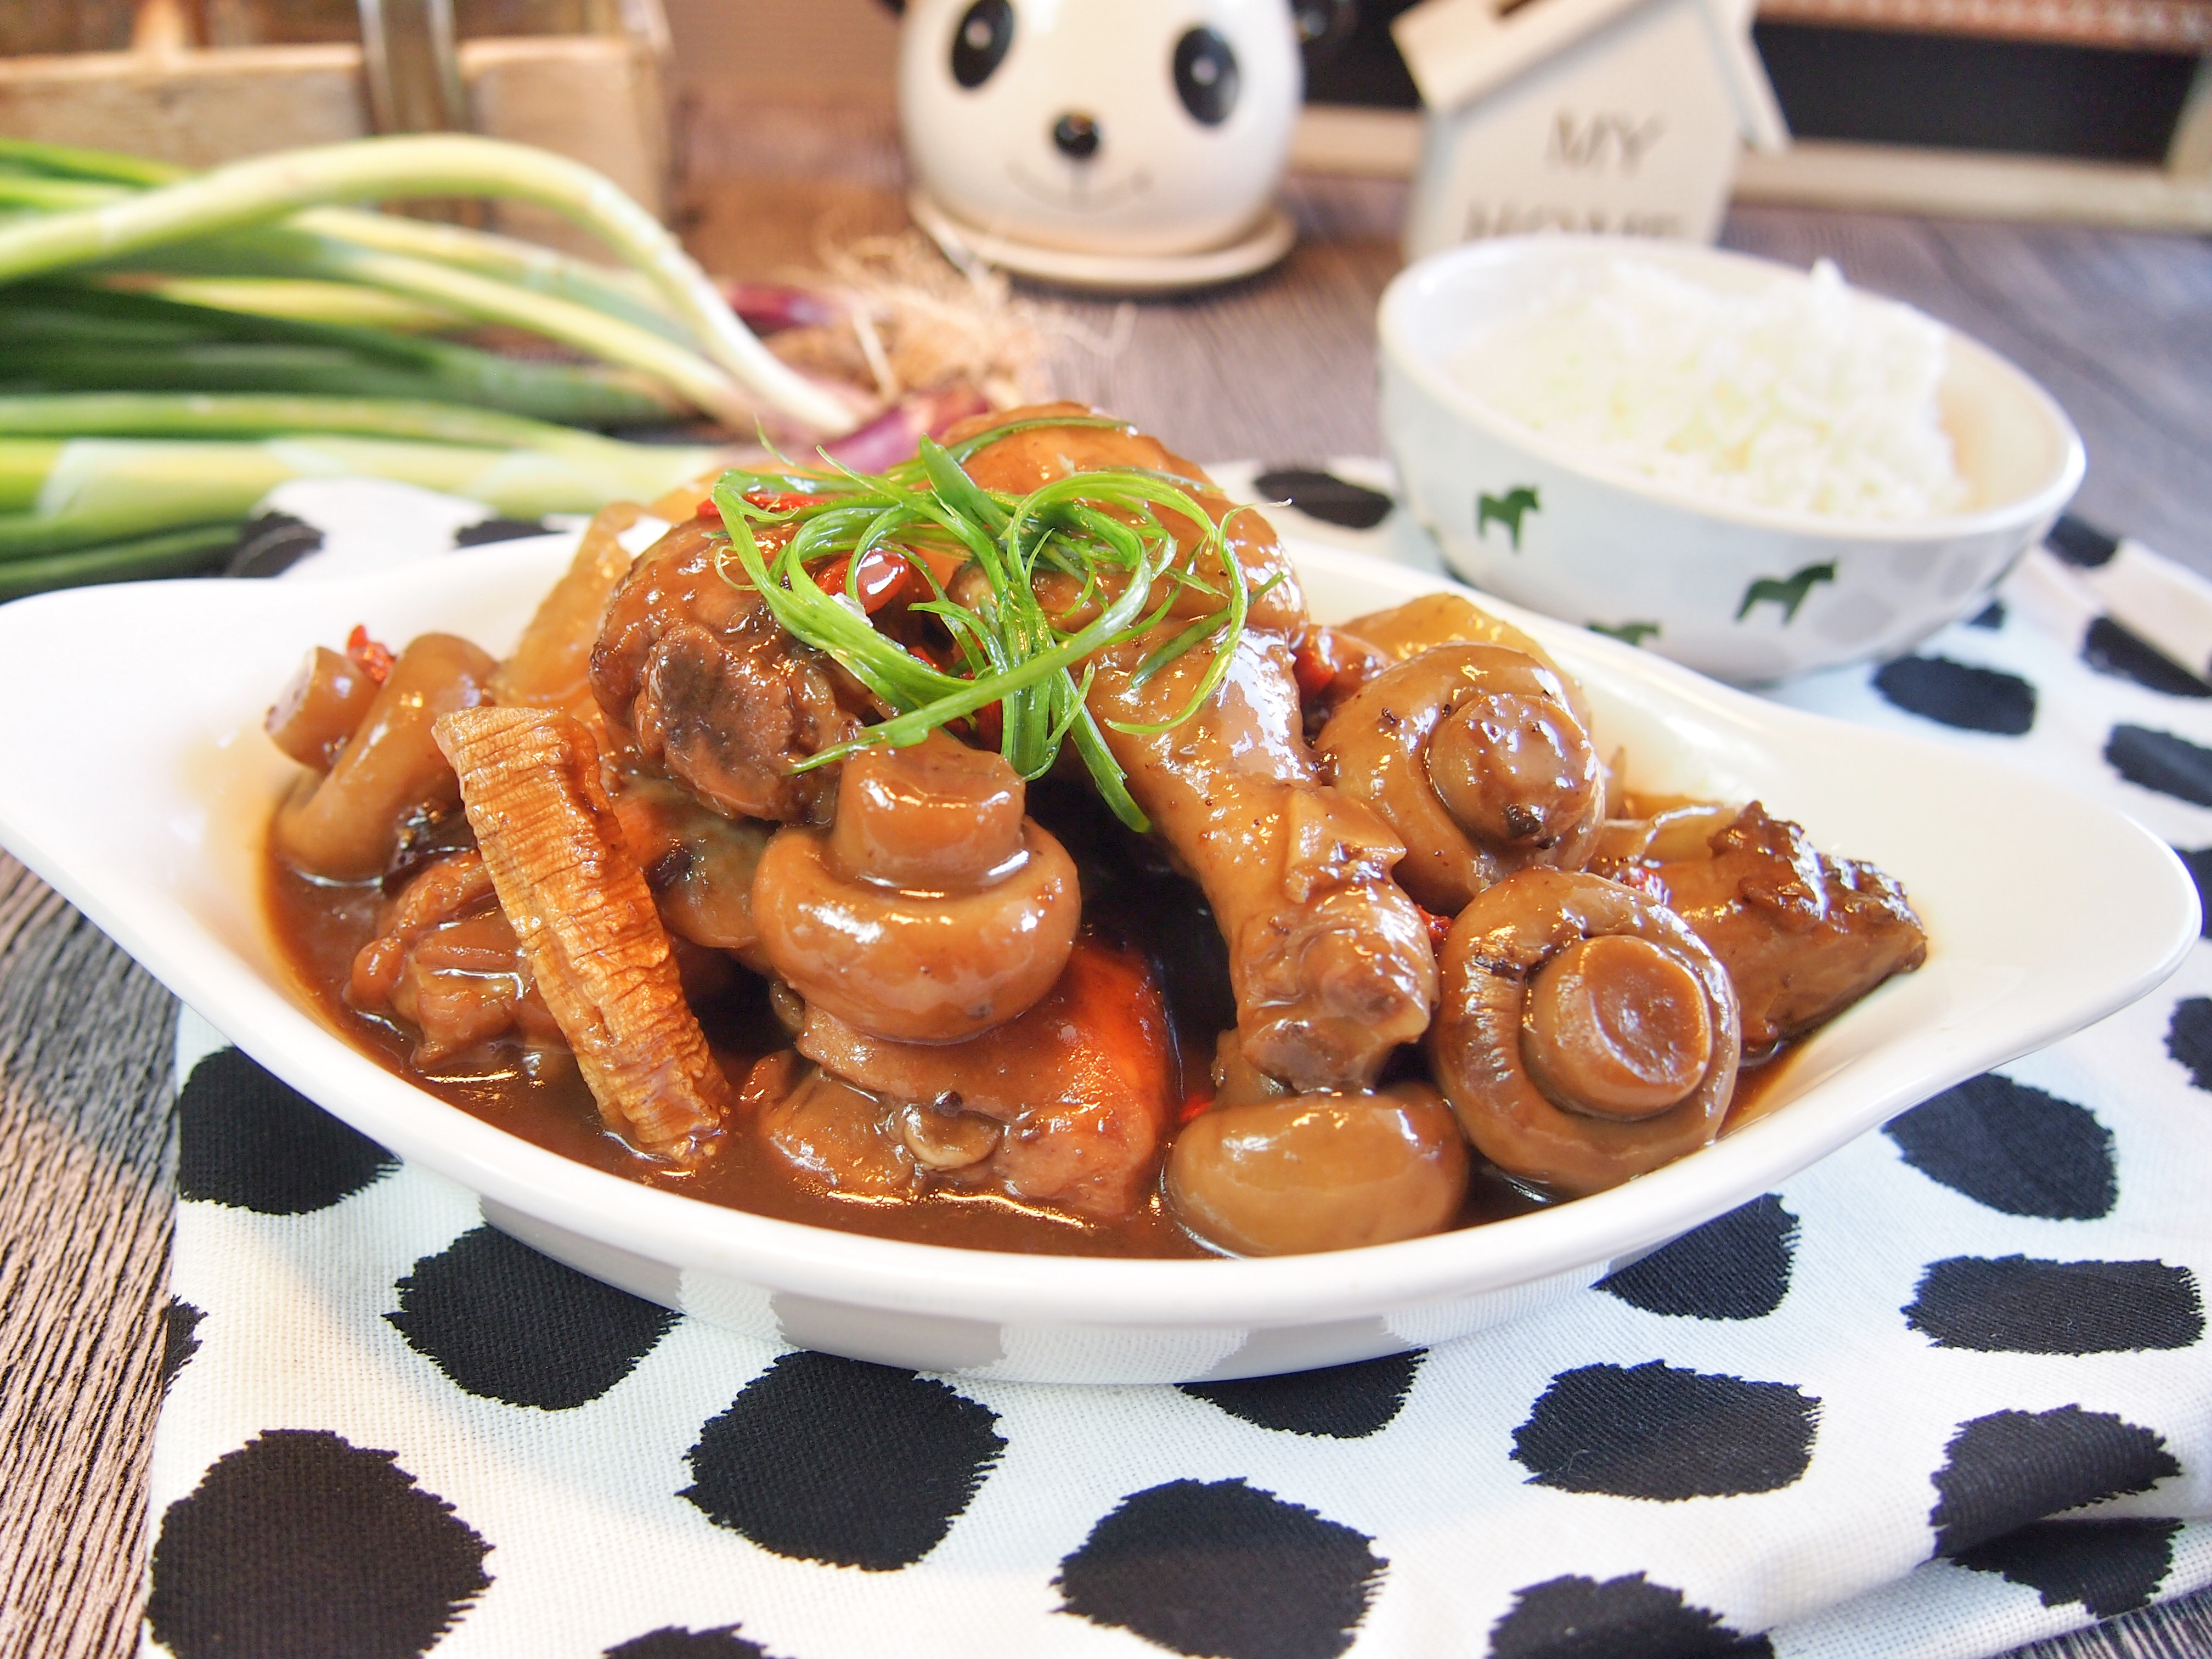 SUPER EASY Braised Herbal Chicken in Yellow Wine 黄酒焖药材鸡